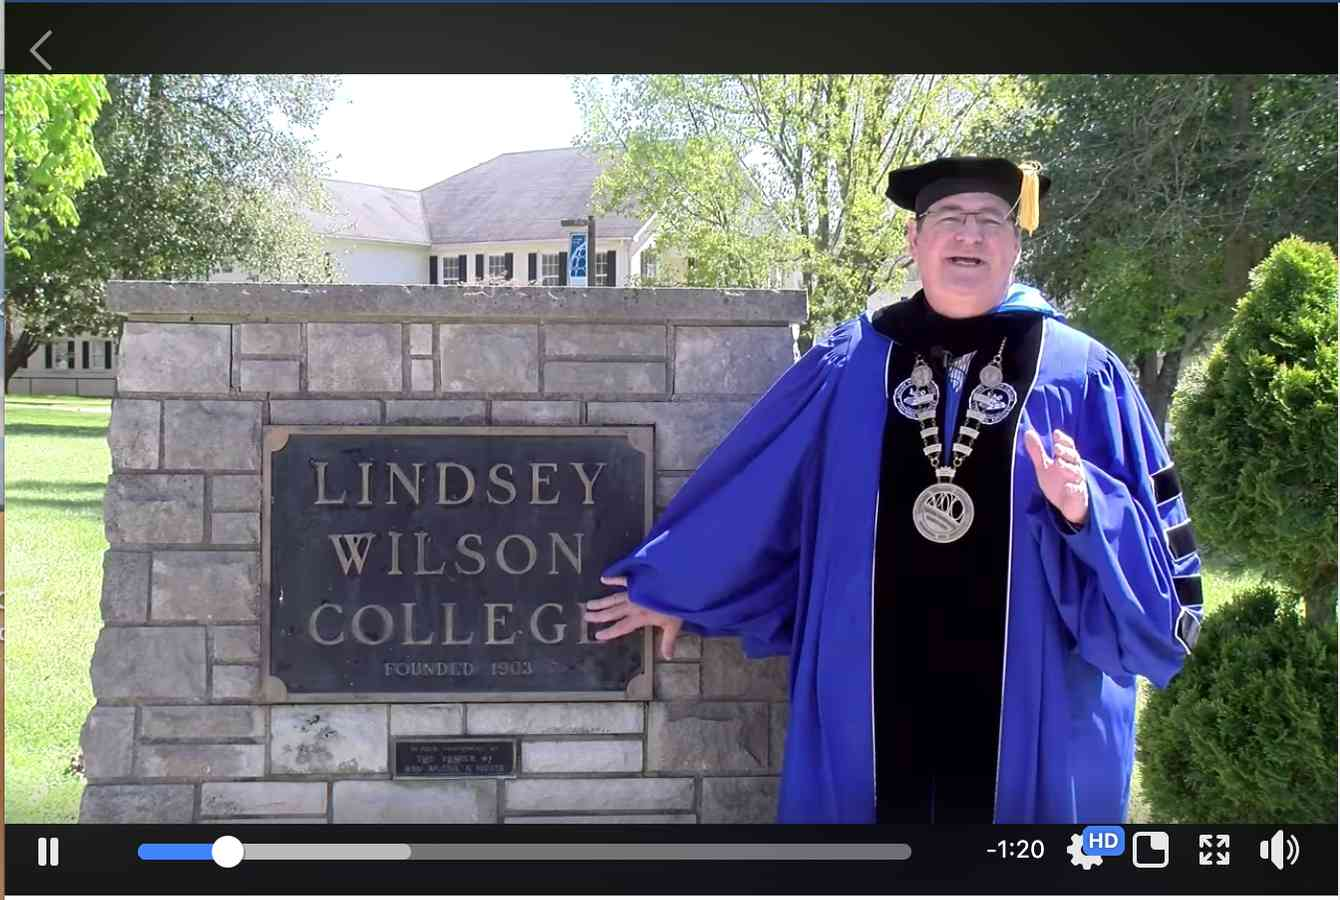 Lindsey Wilson College Recognizes the Class of 2020